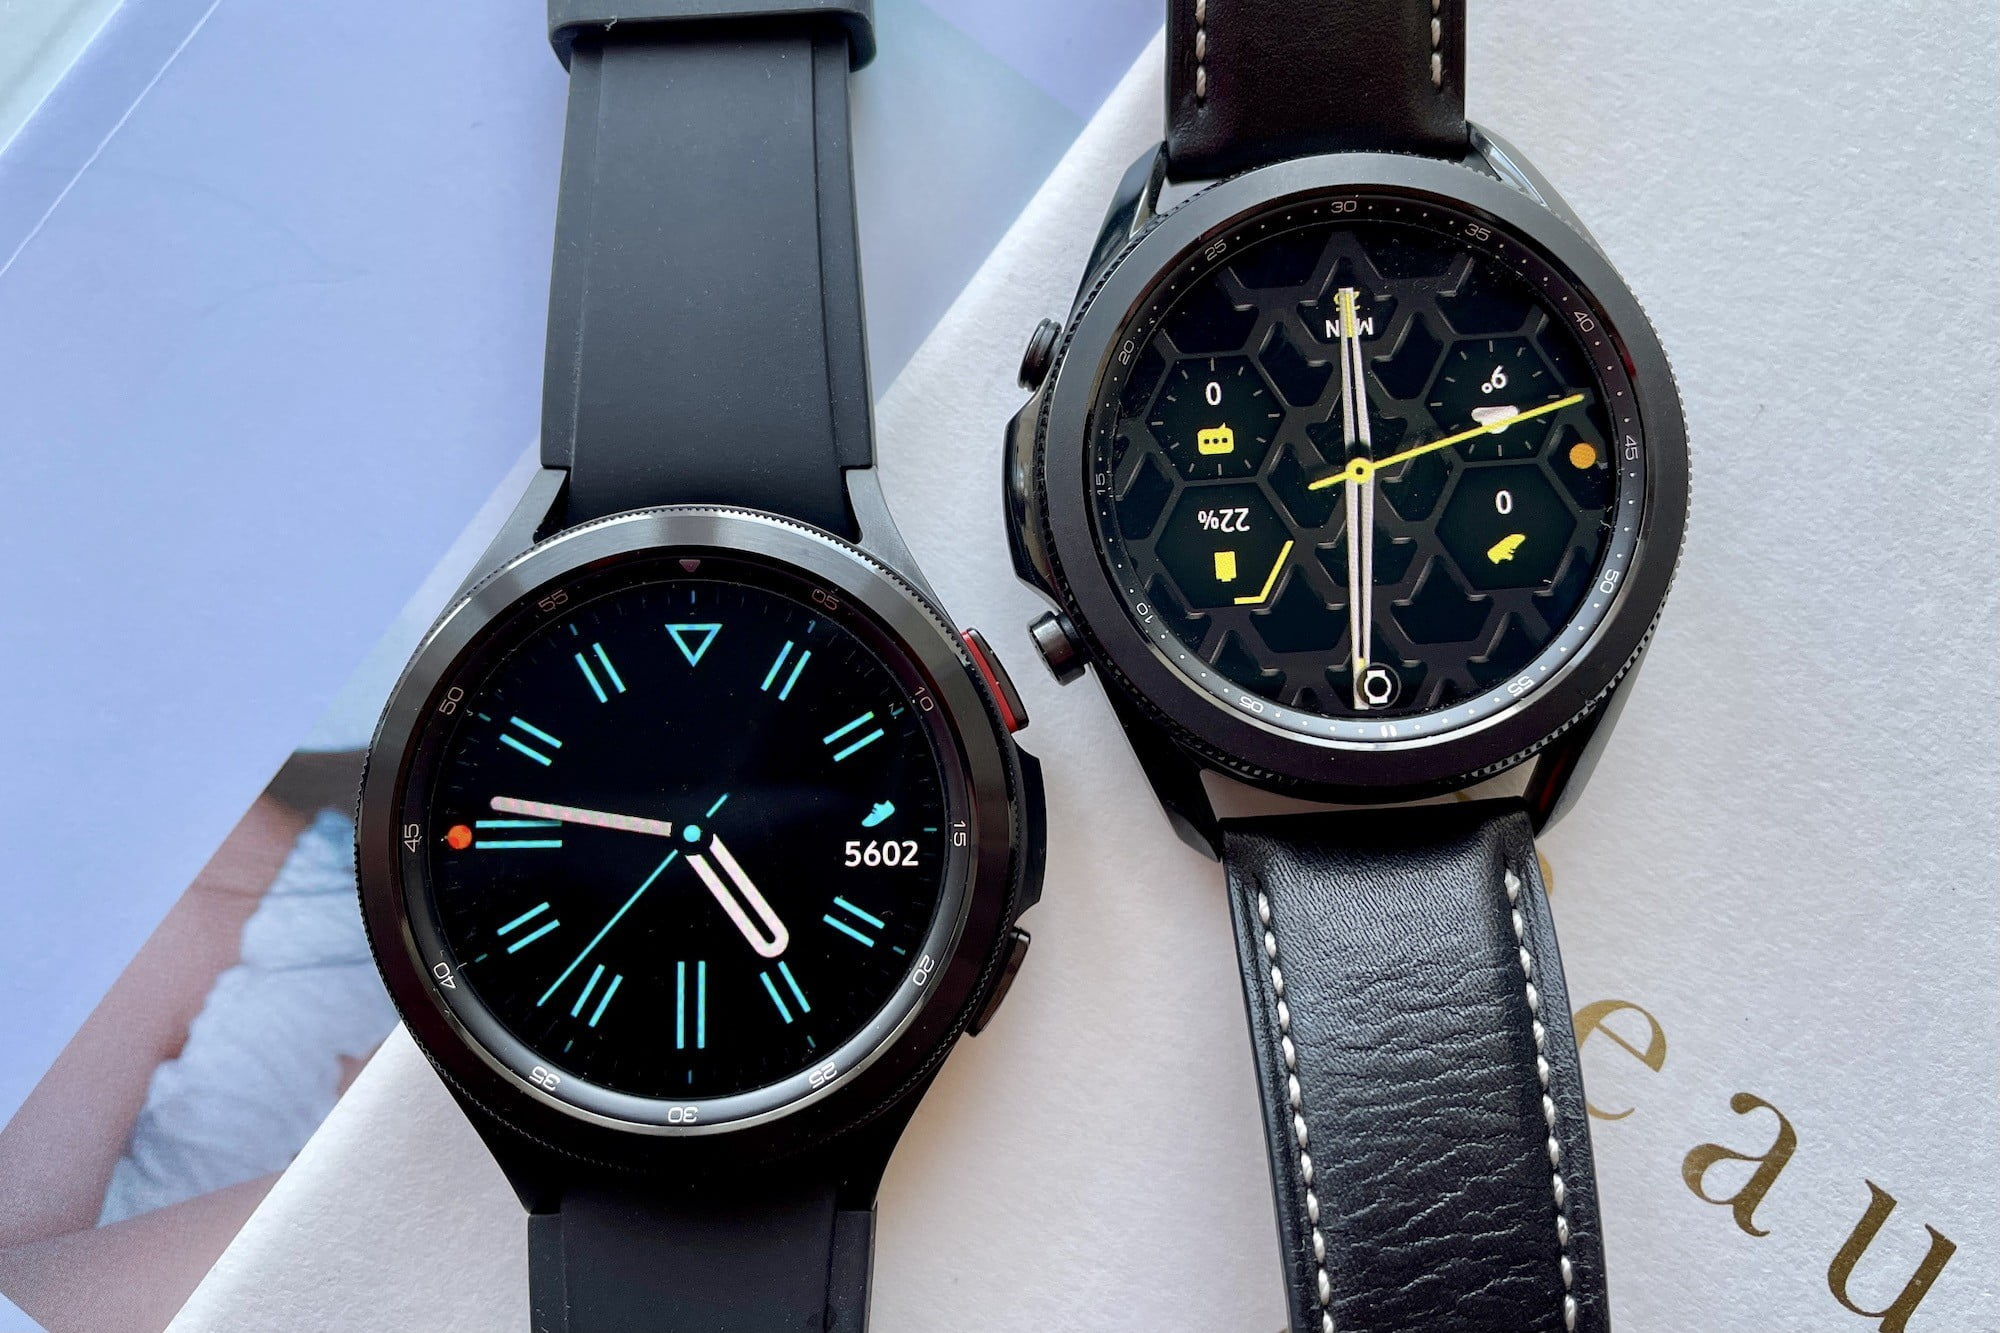 Galaxy Watch 4 Classic (left) and Galaxy Watch 3 (right).